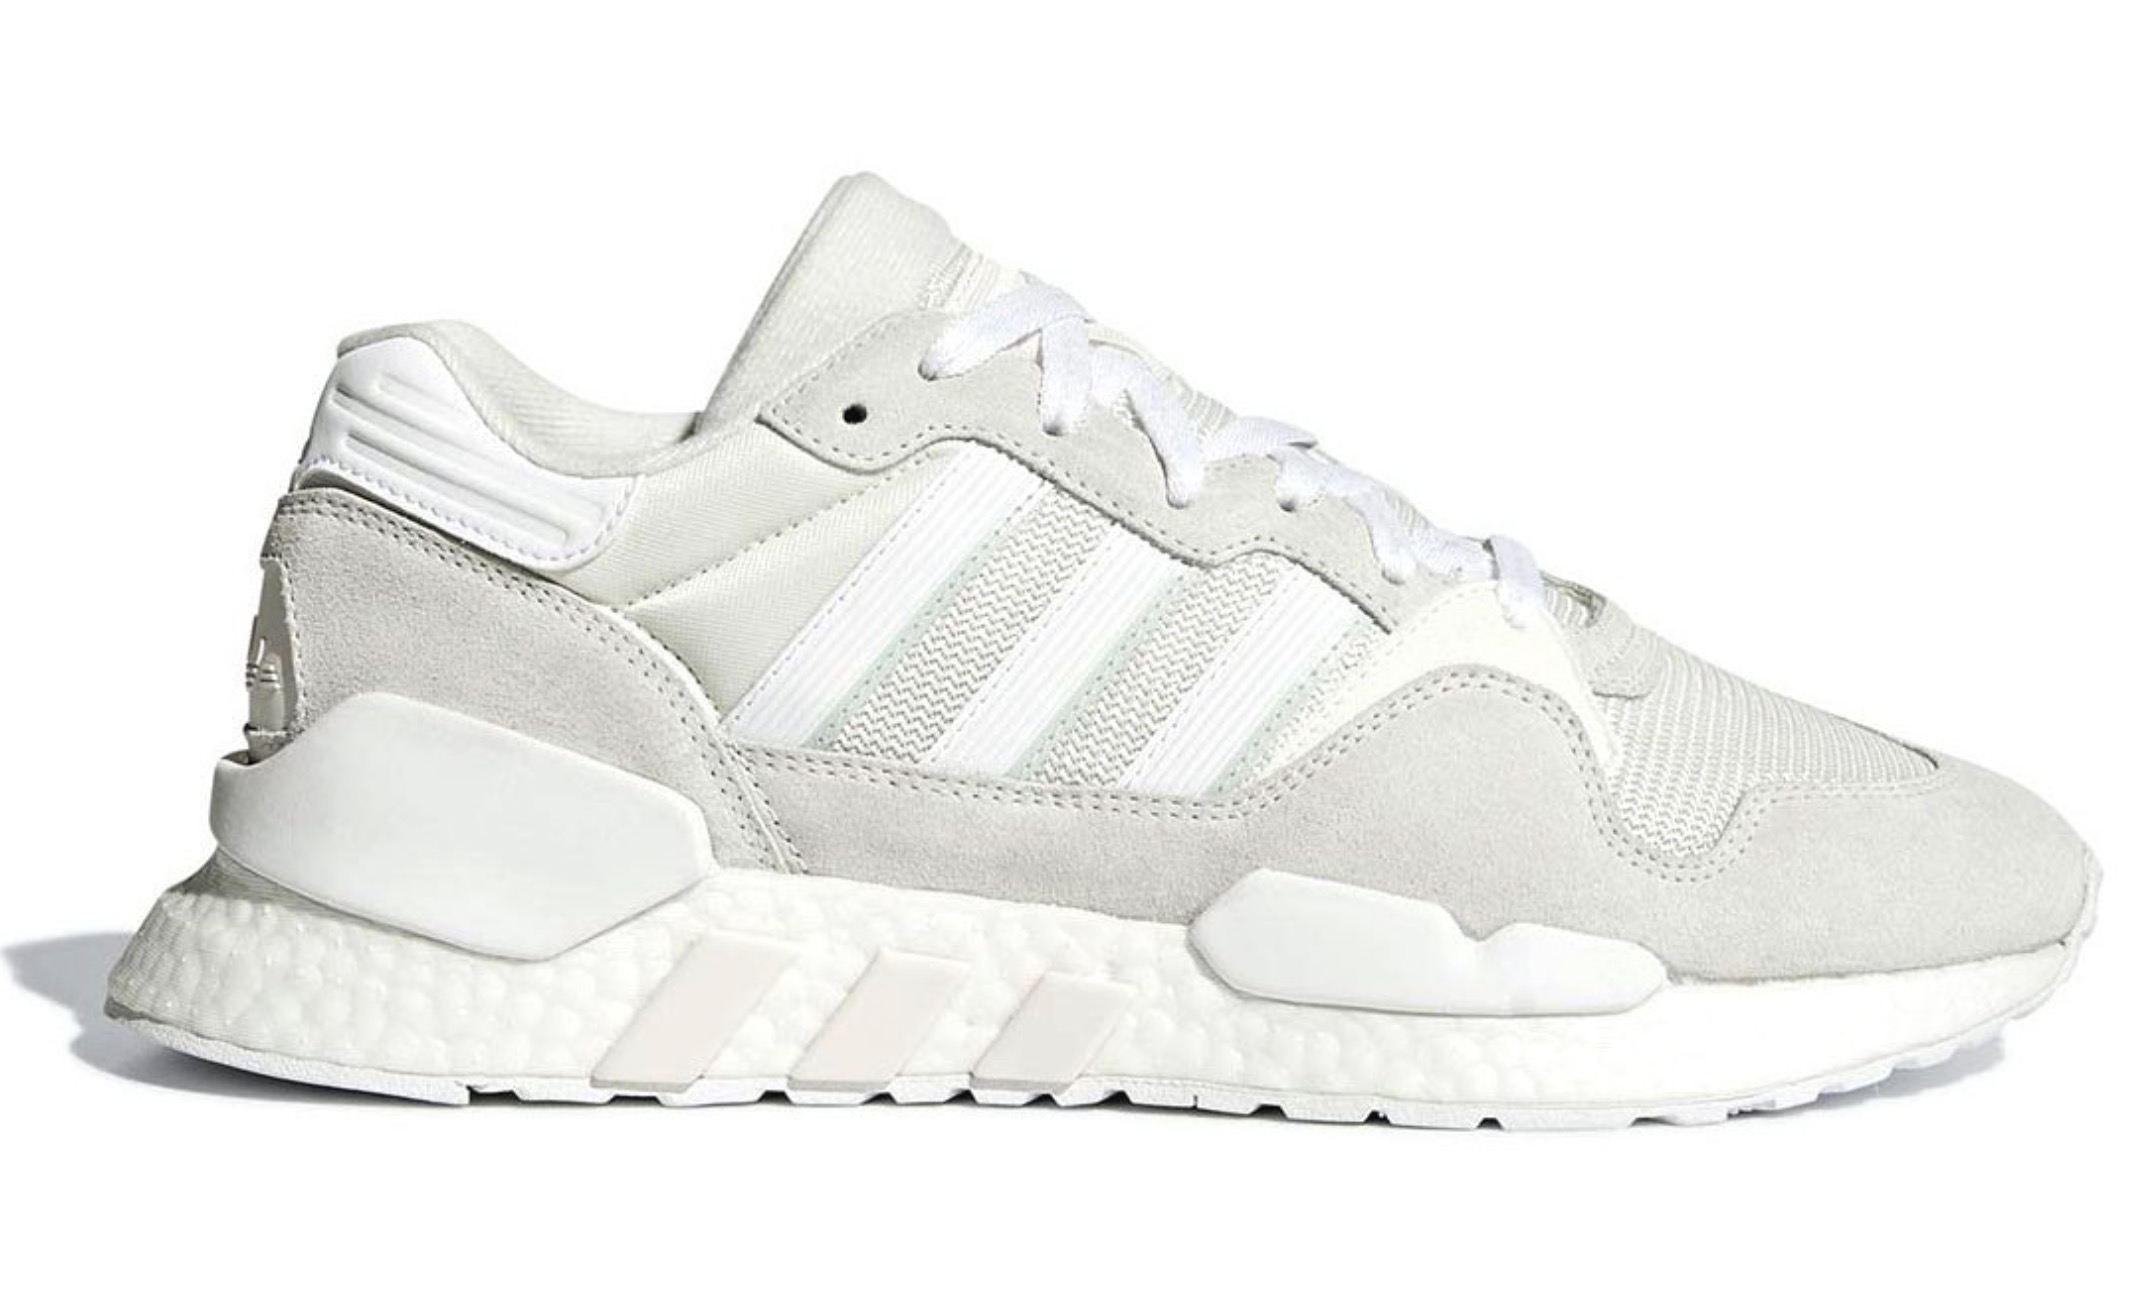 promo code 3598b 1af95 The adidas ZX 930 EQT BOOST Is Fresh In White And Grey ...